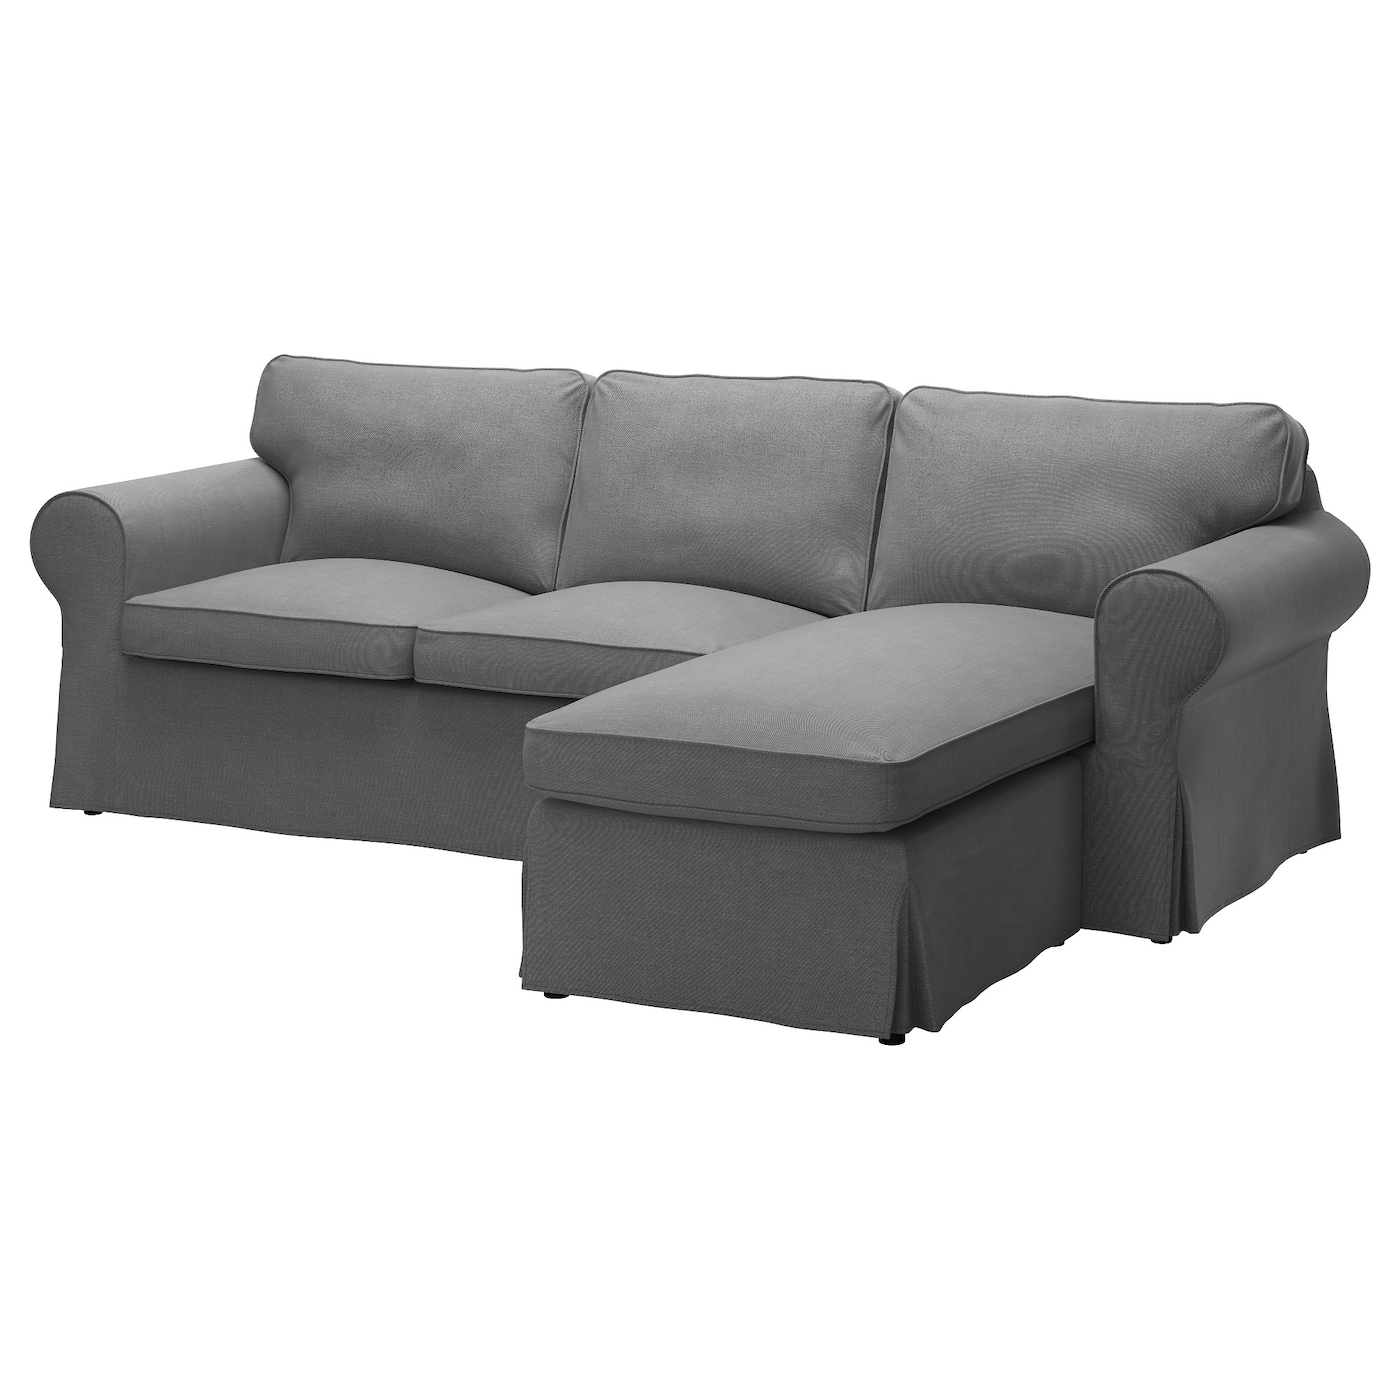 Ektorp two seat sofa and chaise longue nordvalla dark grey for Chaise longue sofa